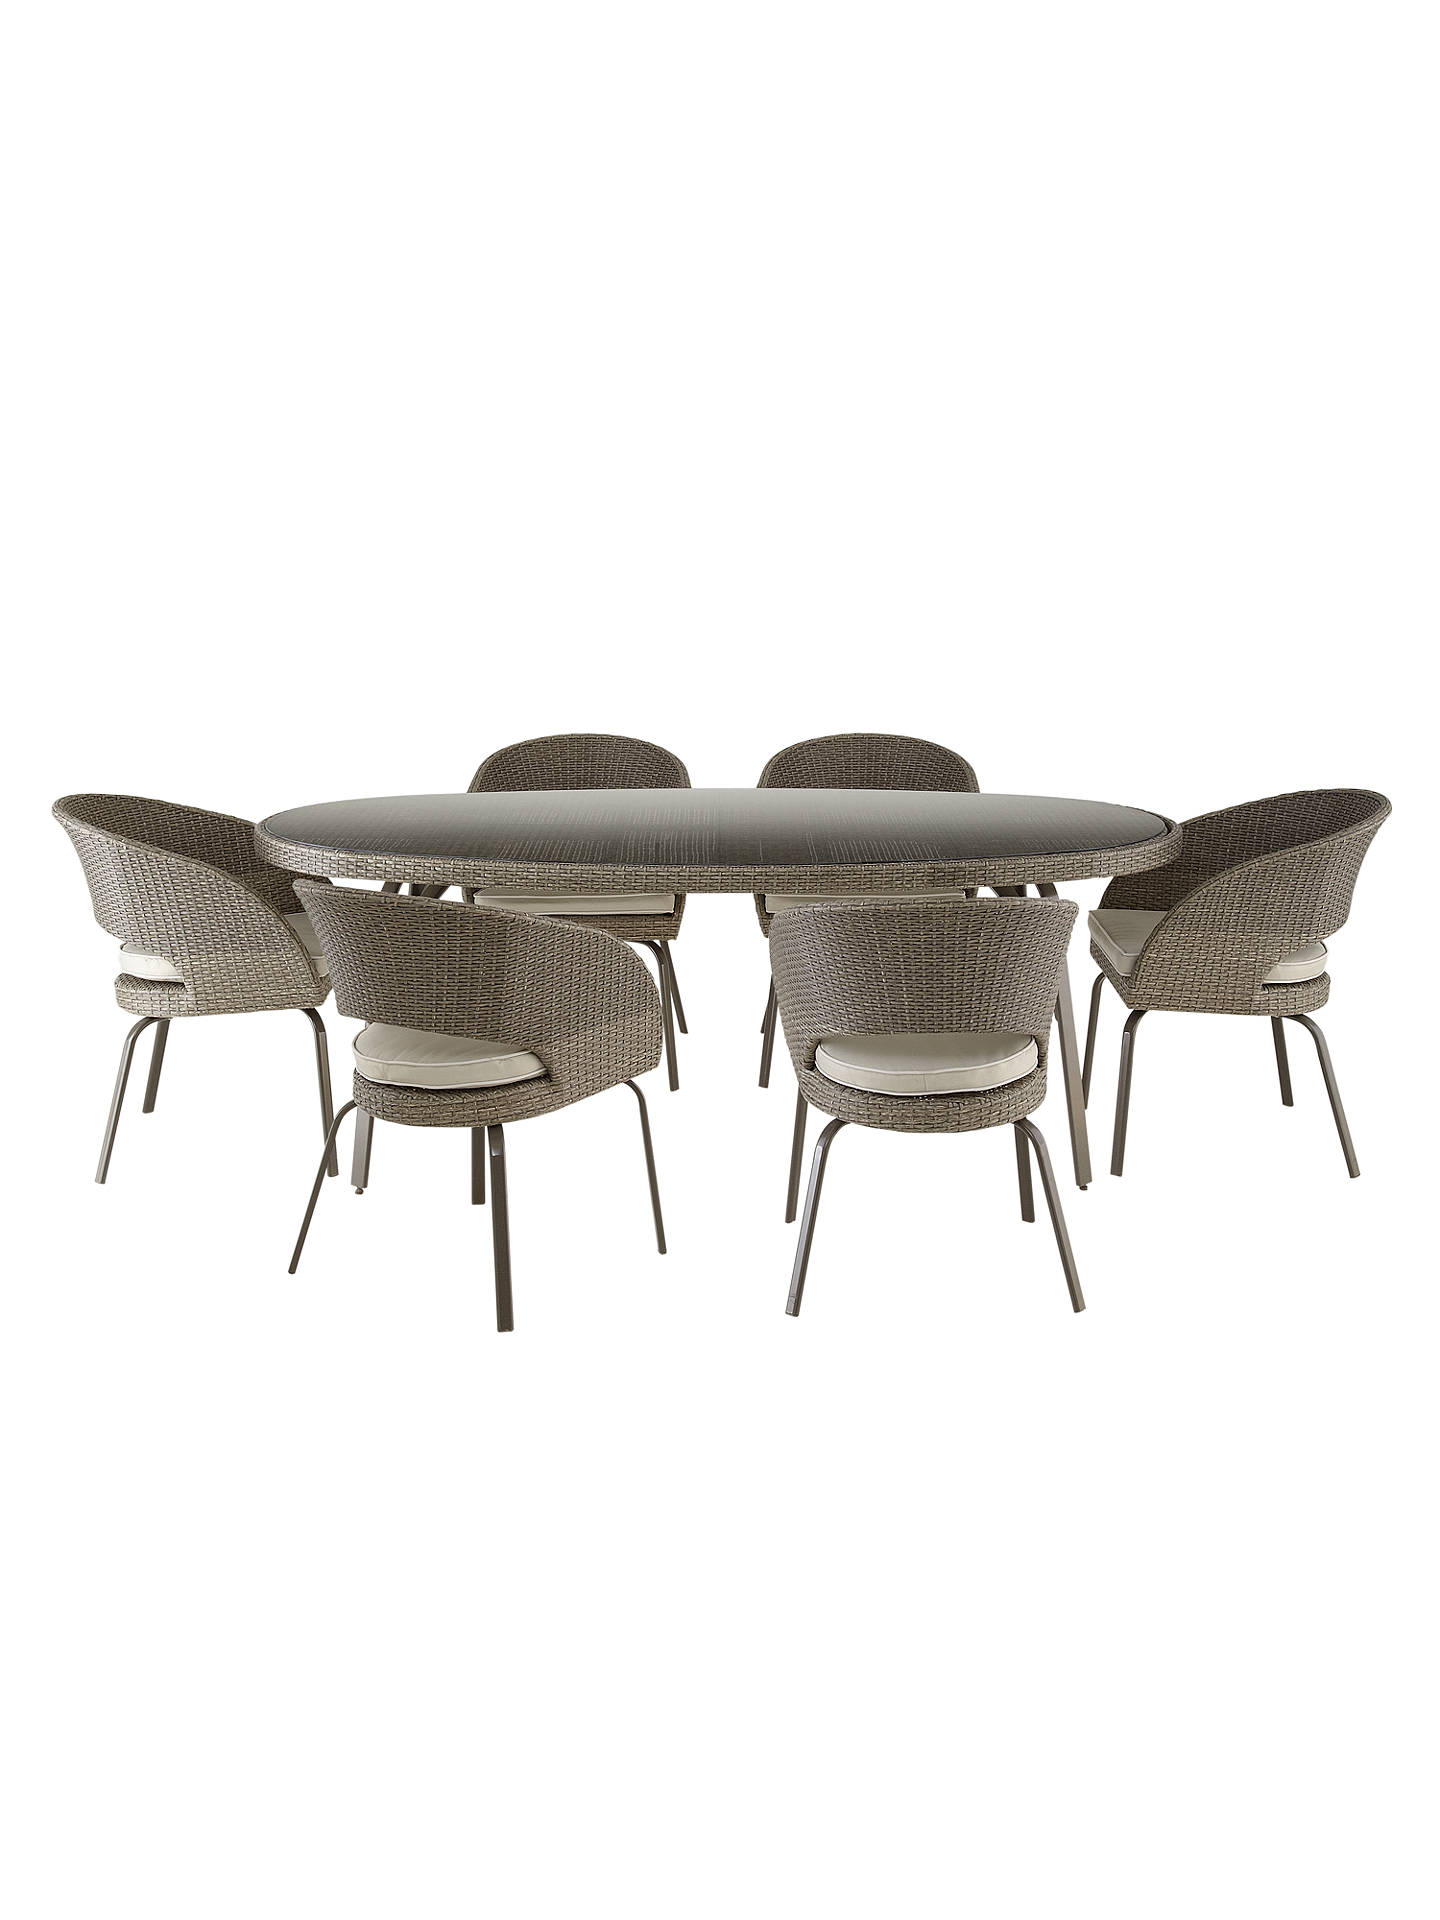 BuyJohn Lewis & Partners Corsica 6 Seater Round Garden Dining Table Online at johnlewis.com